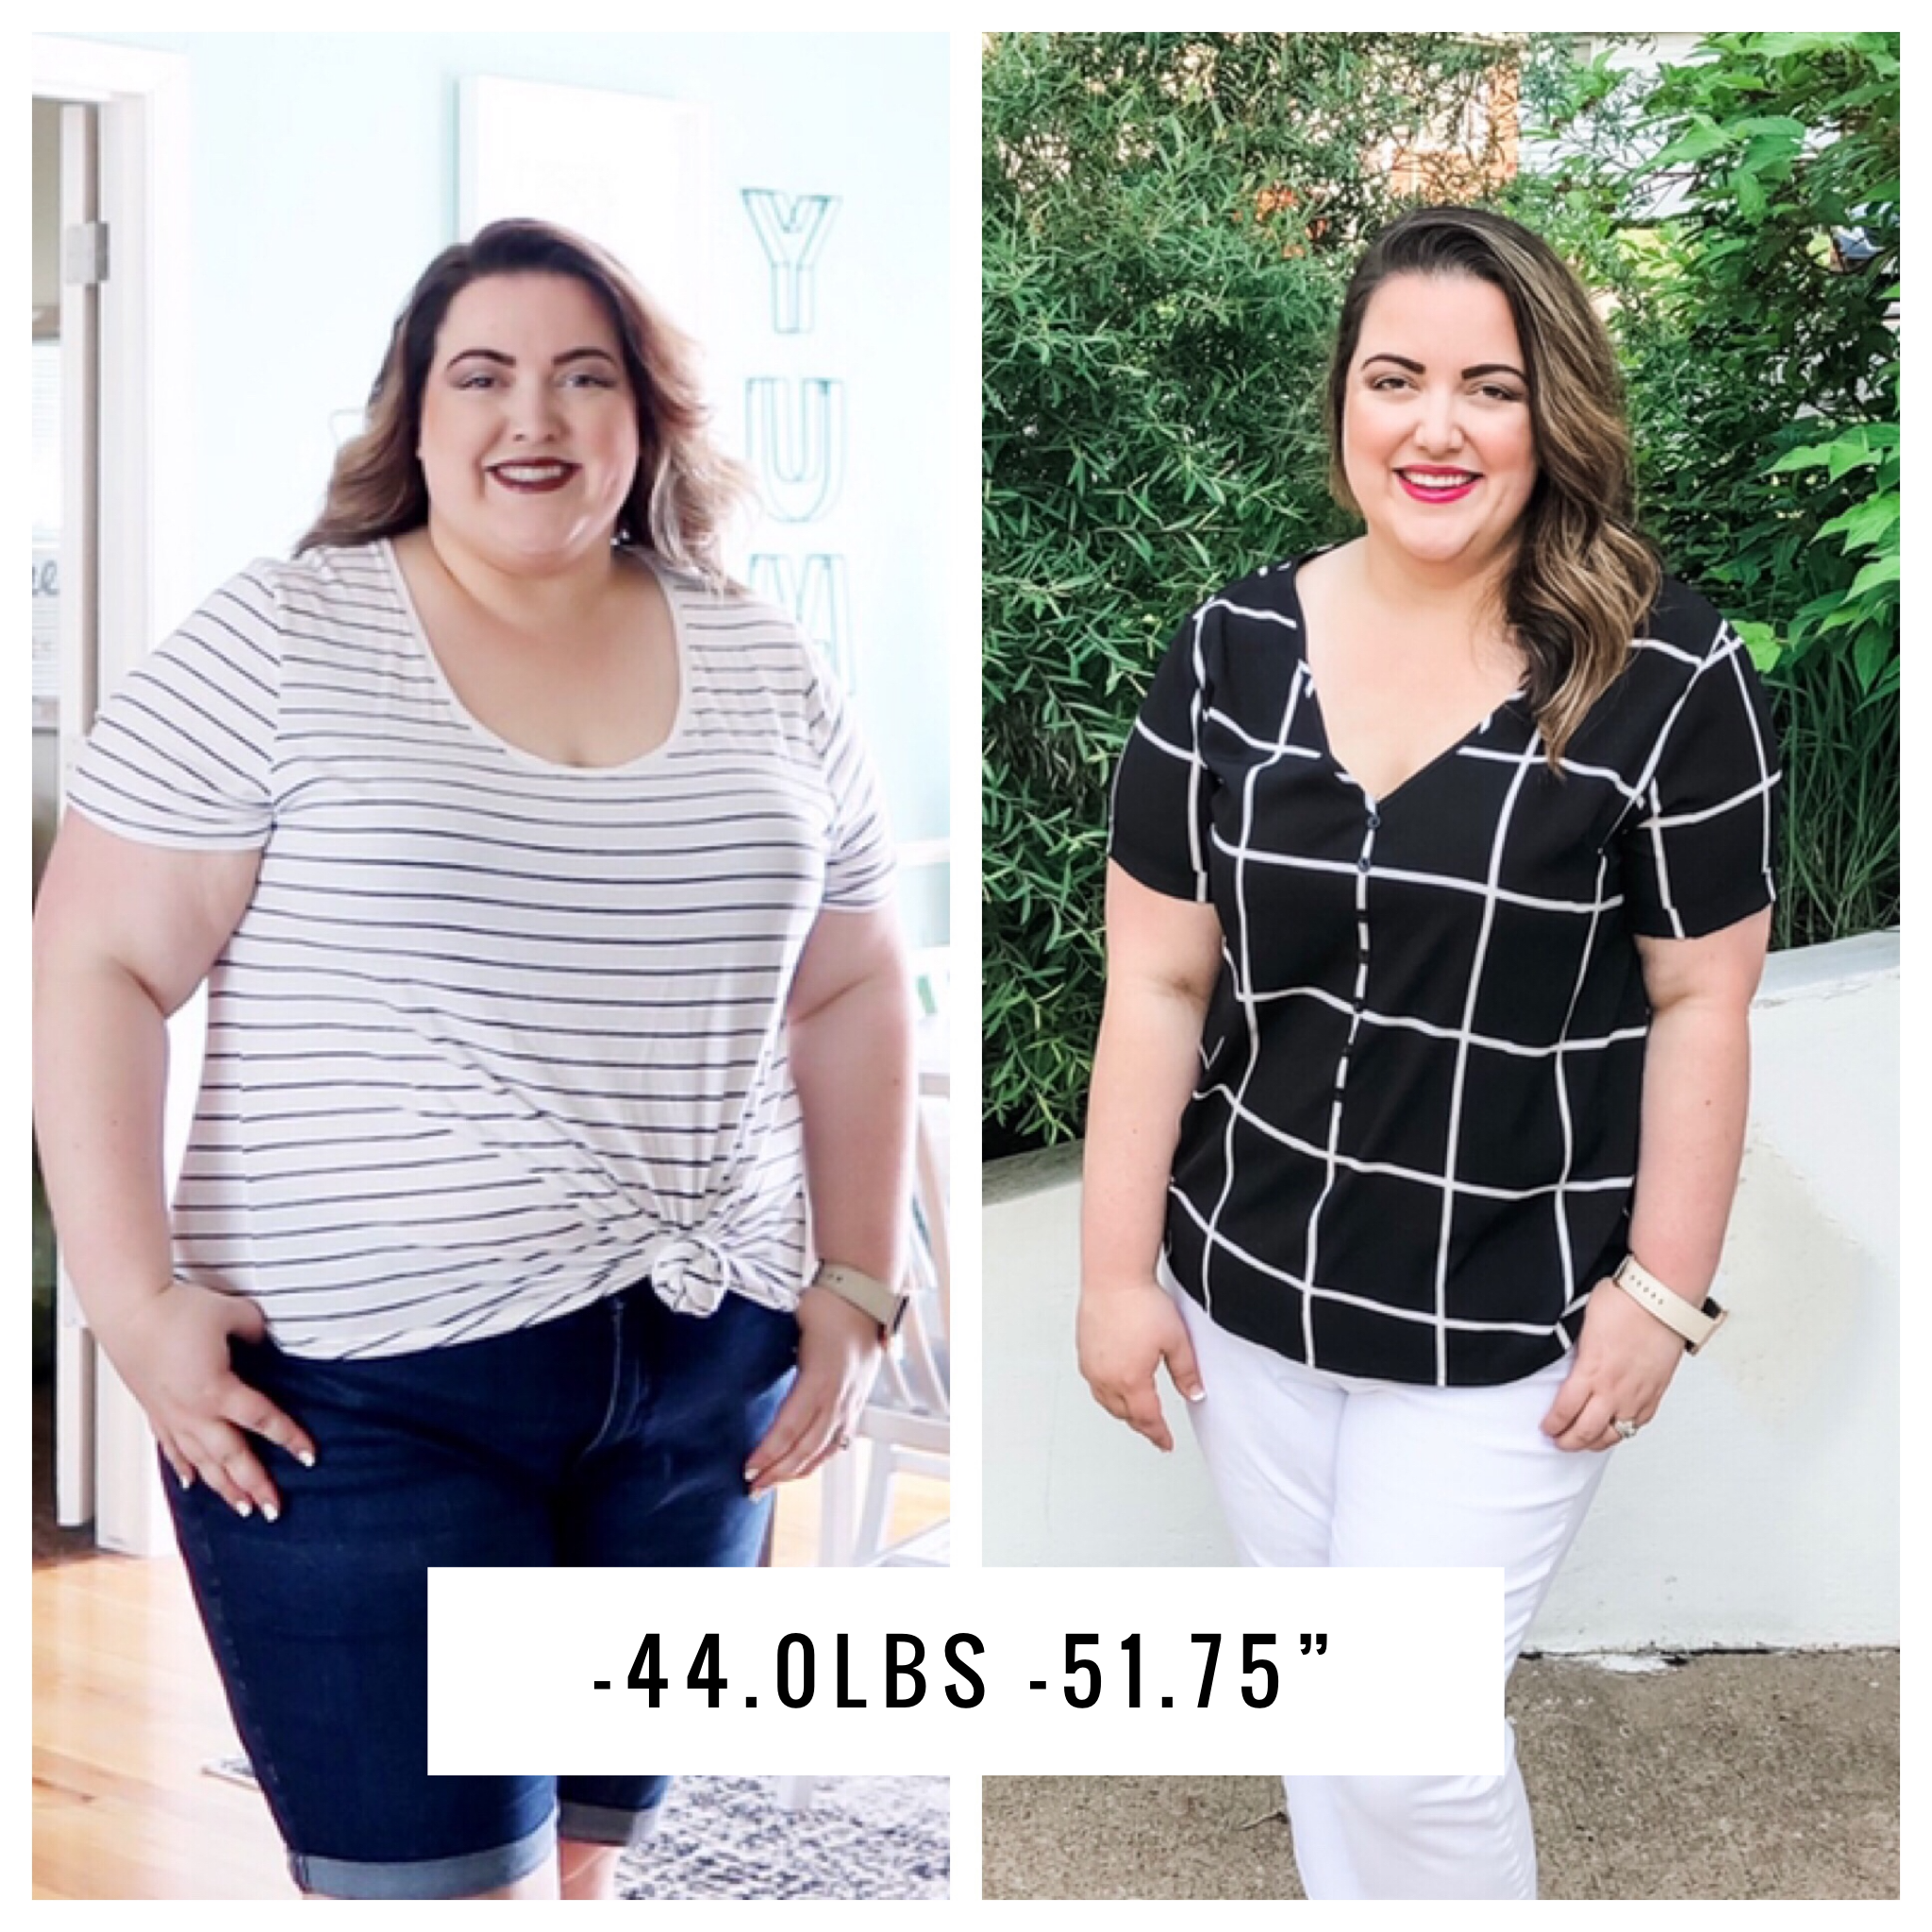 How to Lose Weight Even When You are Stressed - 44lbs in 5 months